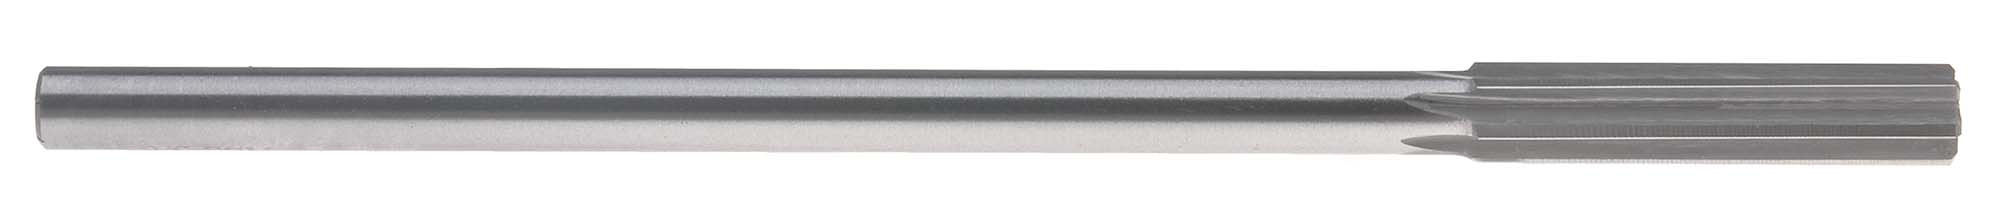 .624 Straight Shank Chucking Reamer, Straight Flute, High Speed Steel